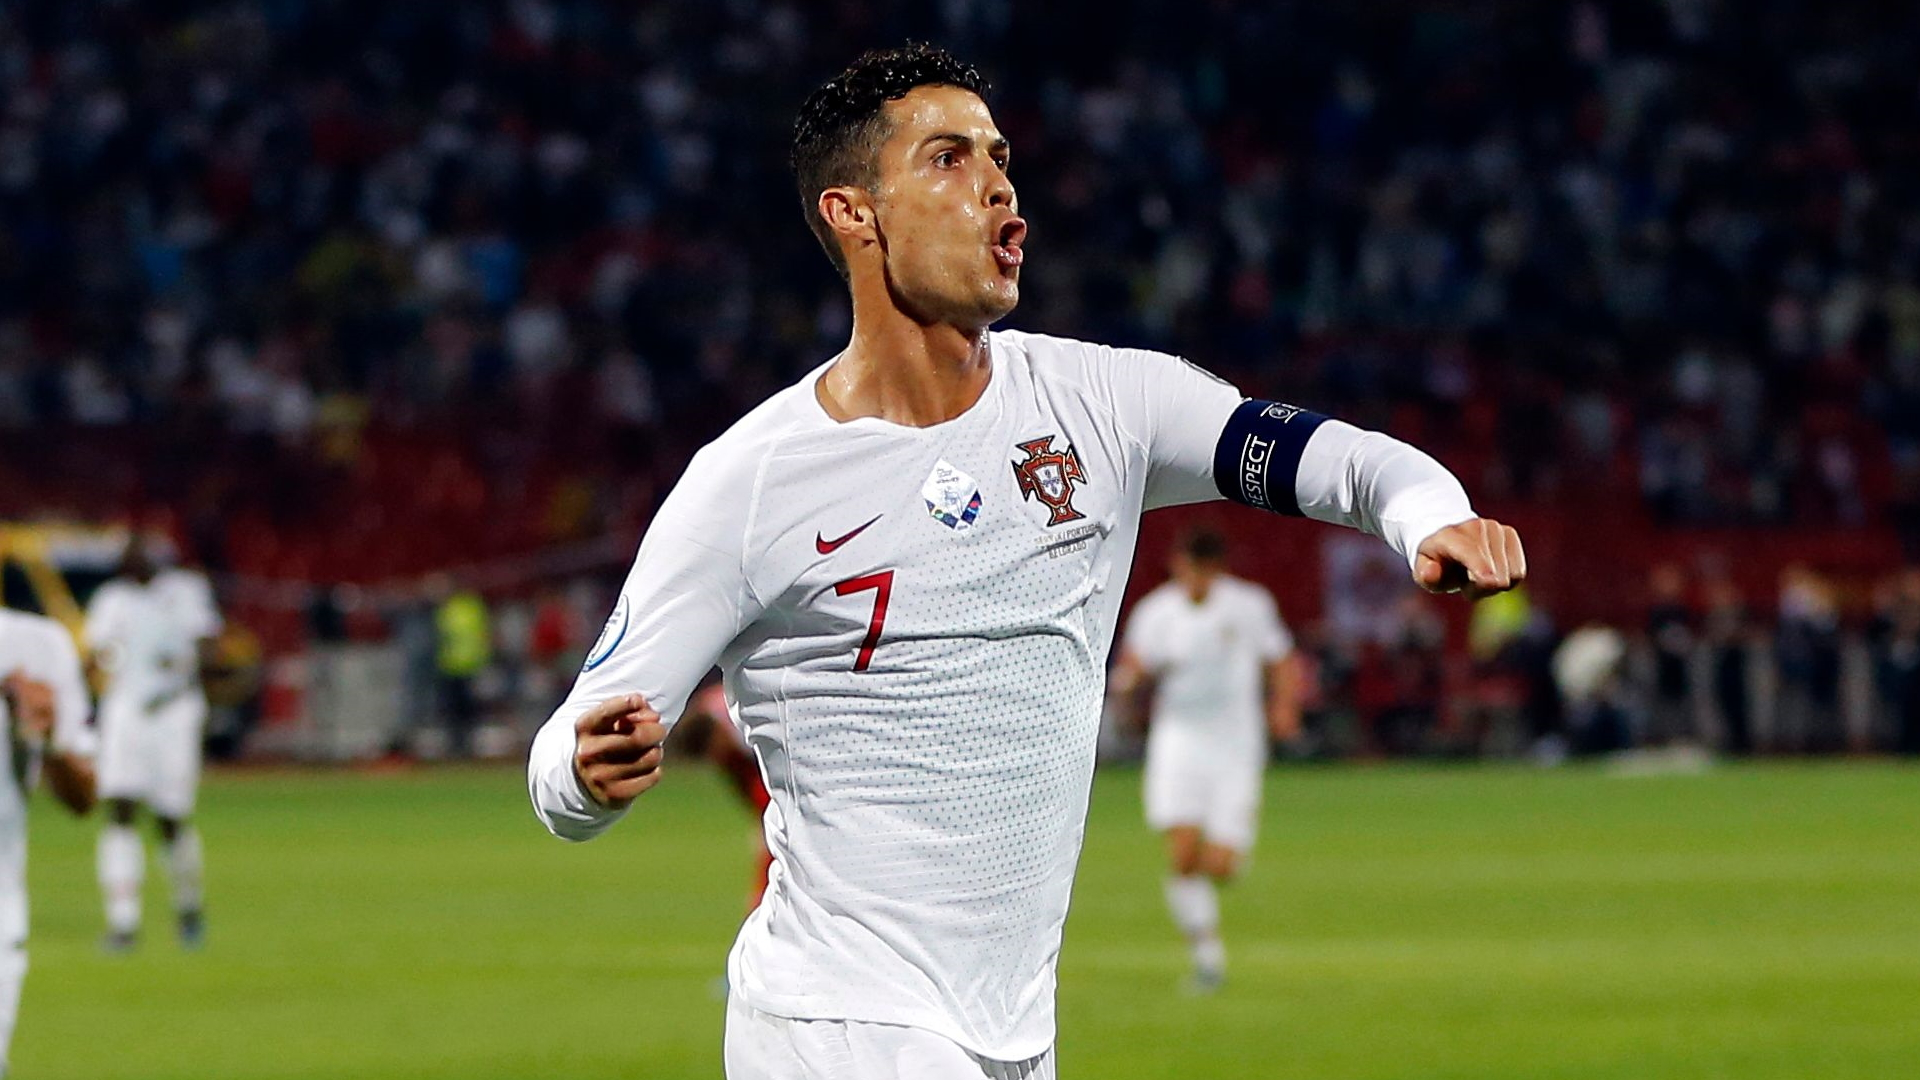 'I'm enjoying this moment' — Ronaldo breaks Euro qualifying goal record in Portugal win